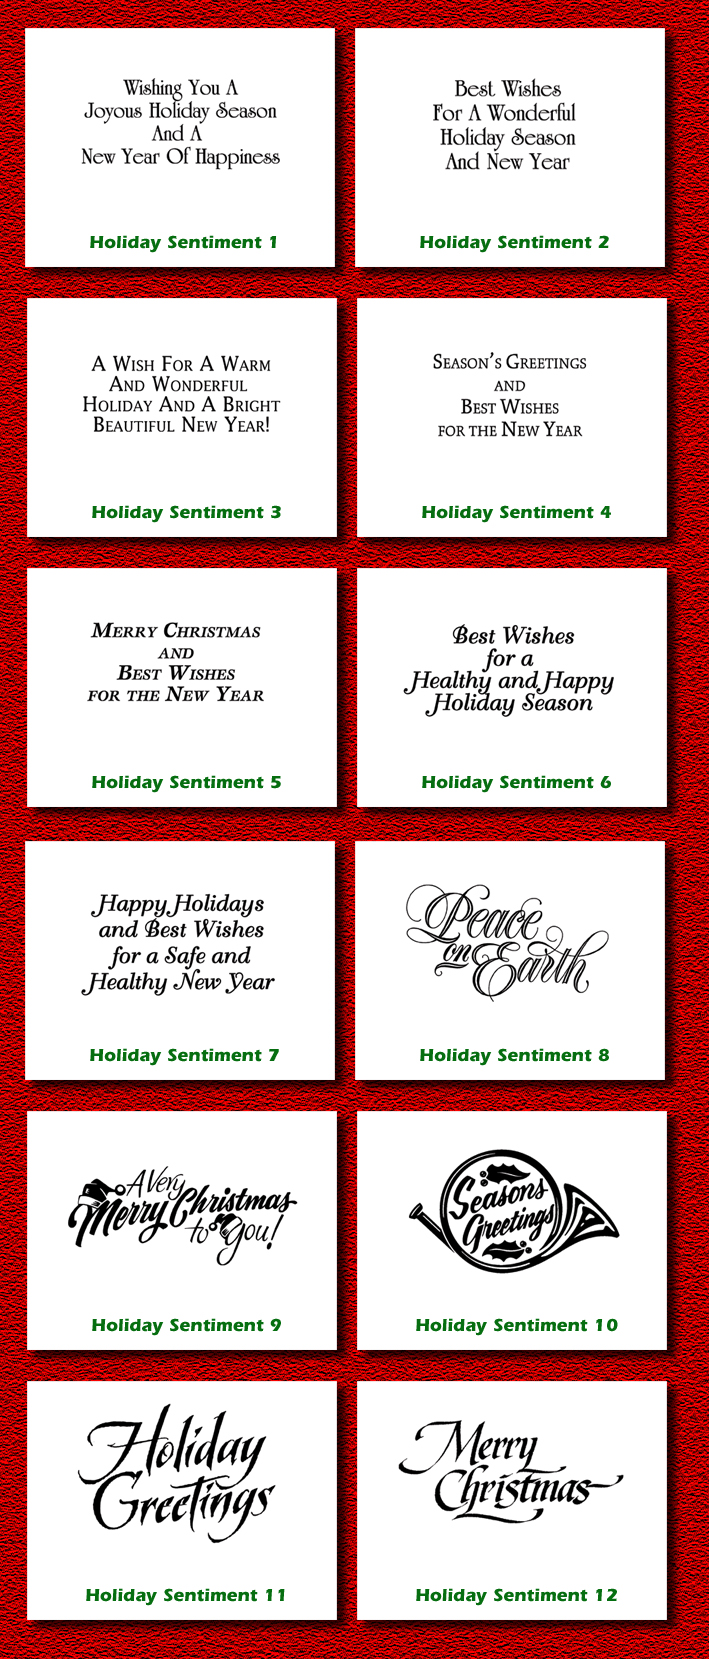 Christmas holiday greeting cards ems view holiday card sentiment samples m4hsunfo